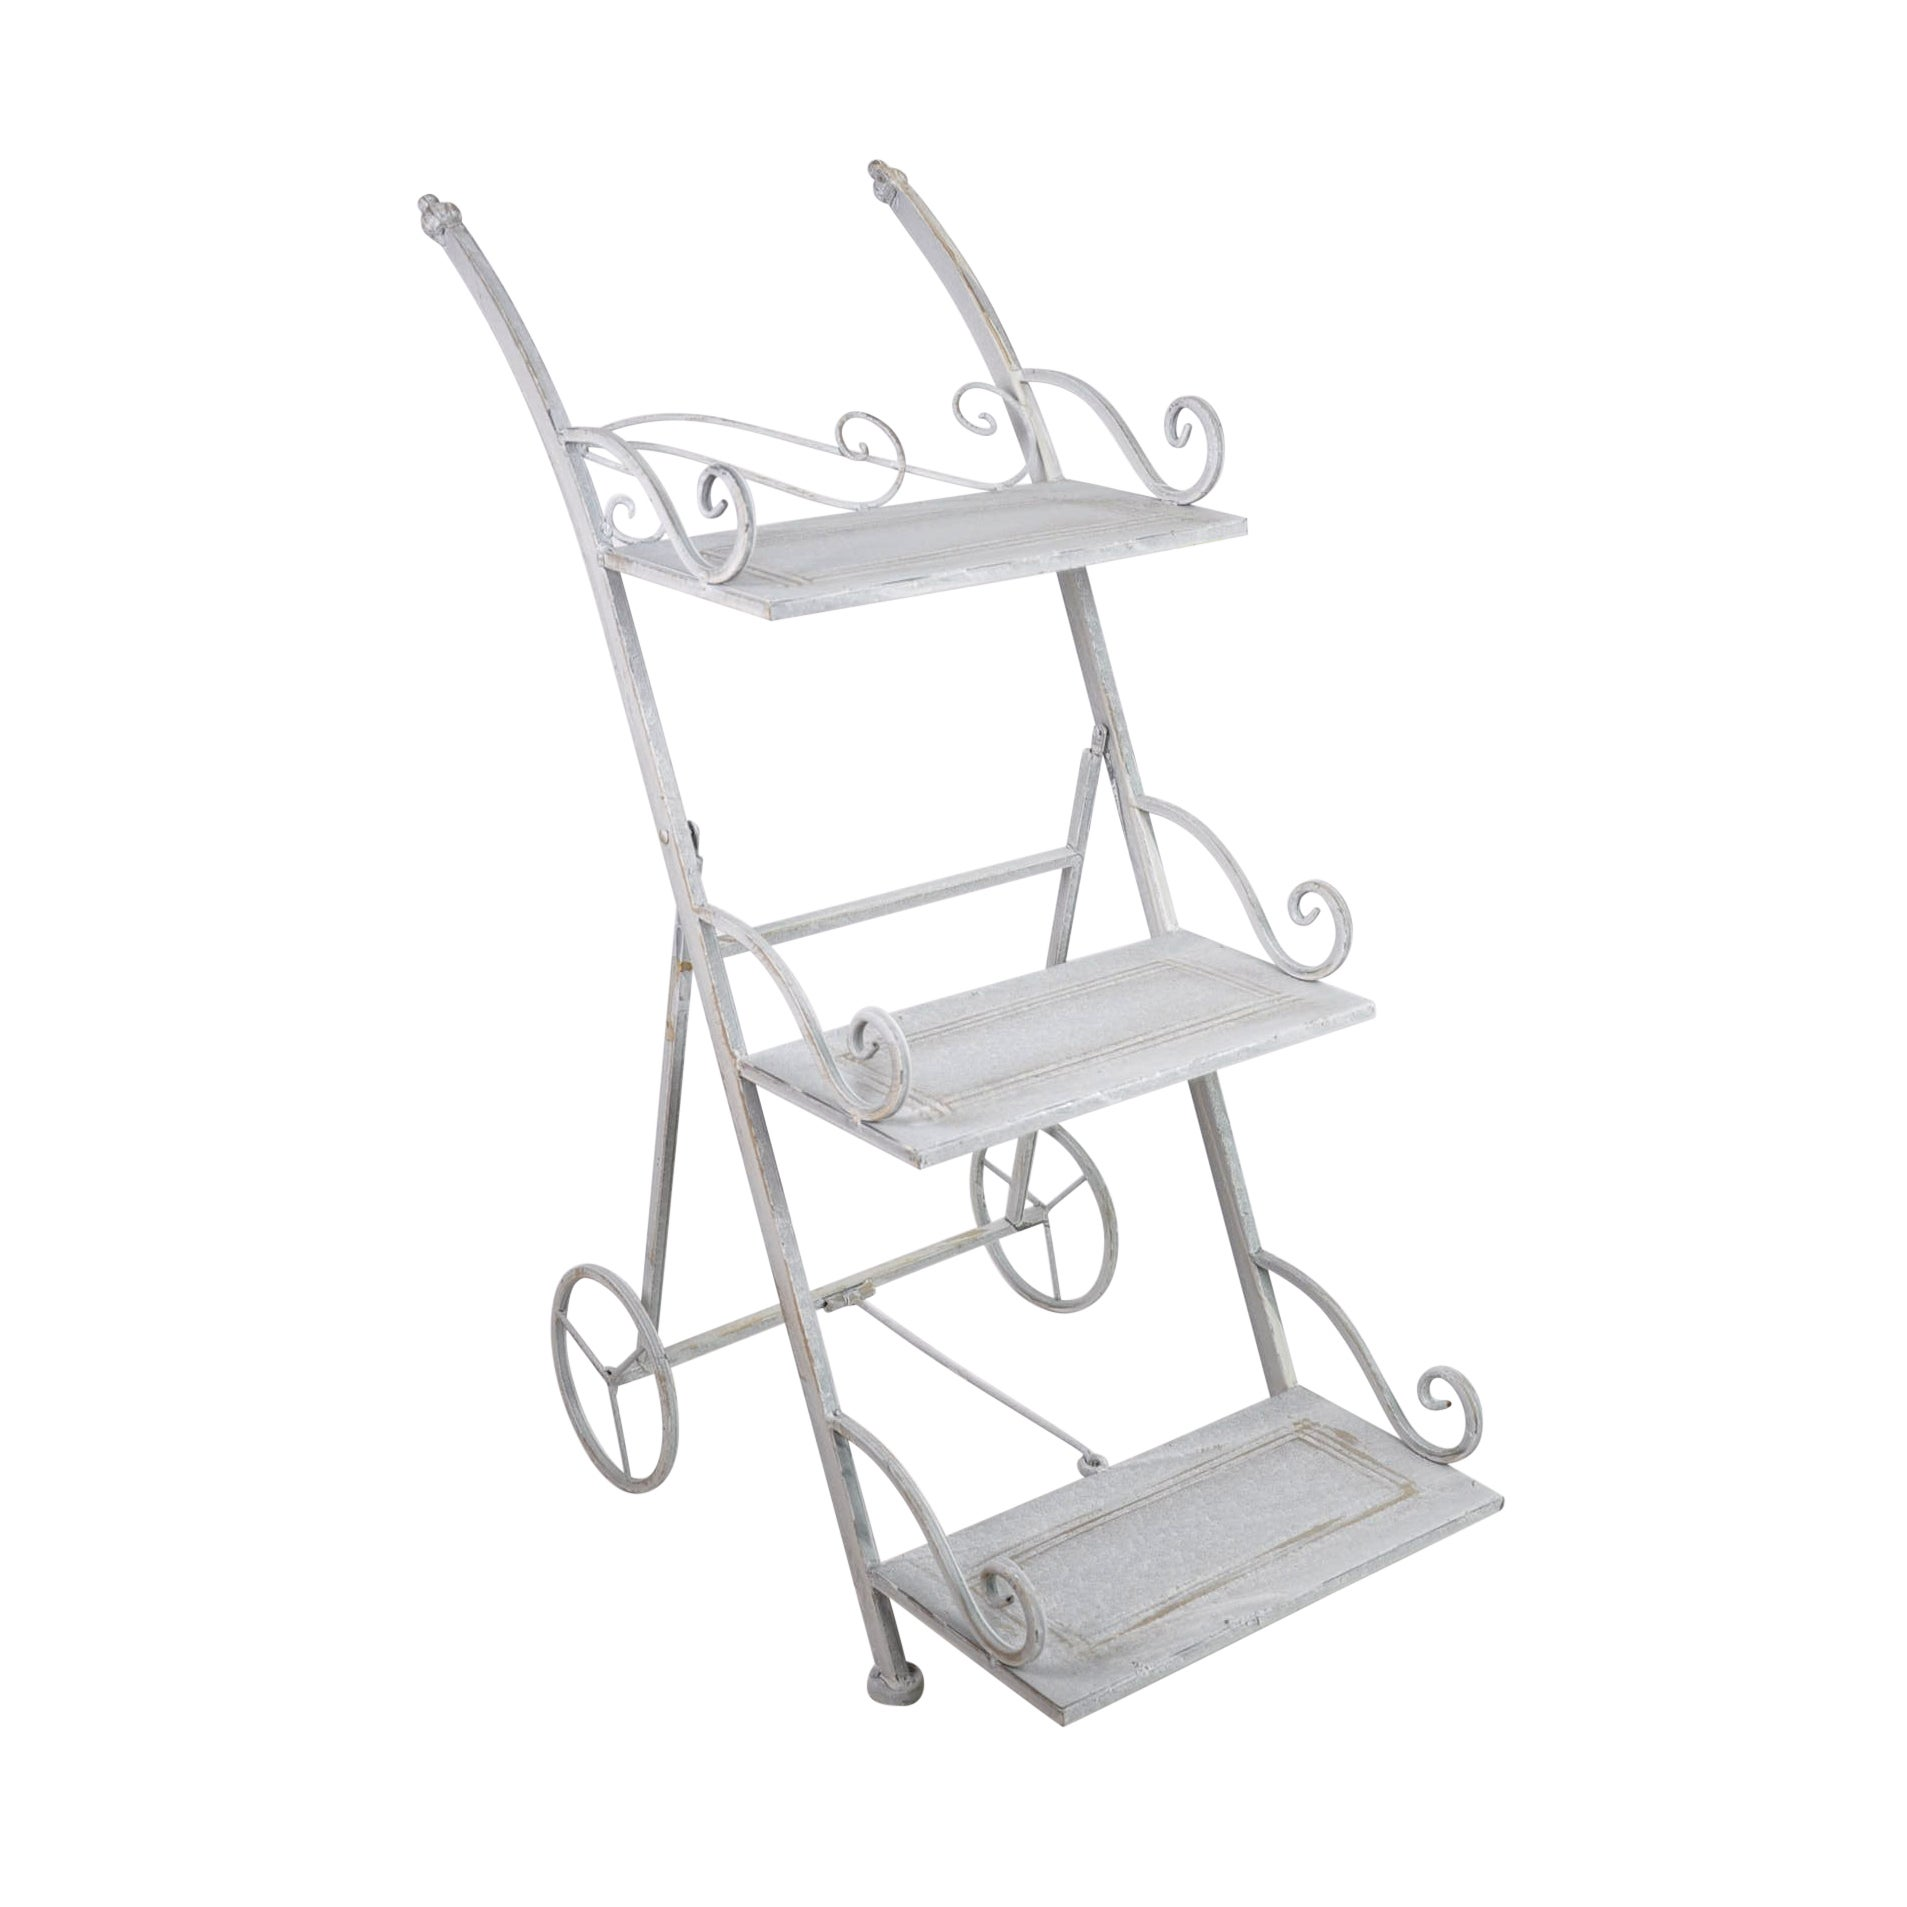 Jeco Orchies Metal 3-tiered Plant Stand (3-tiered), White...